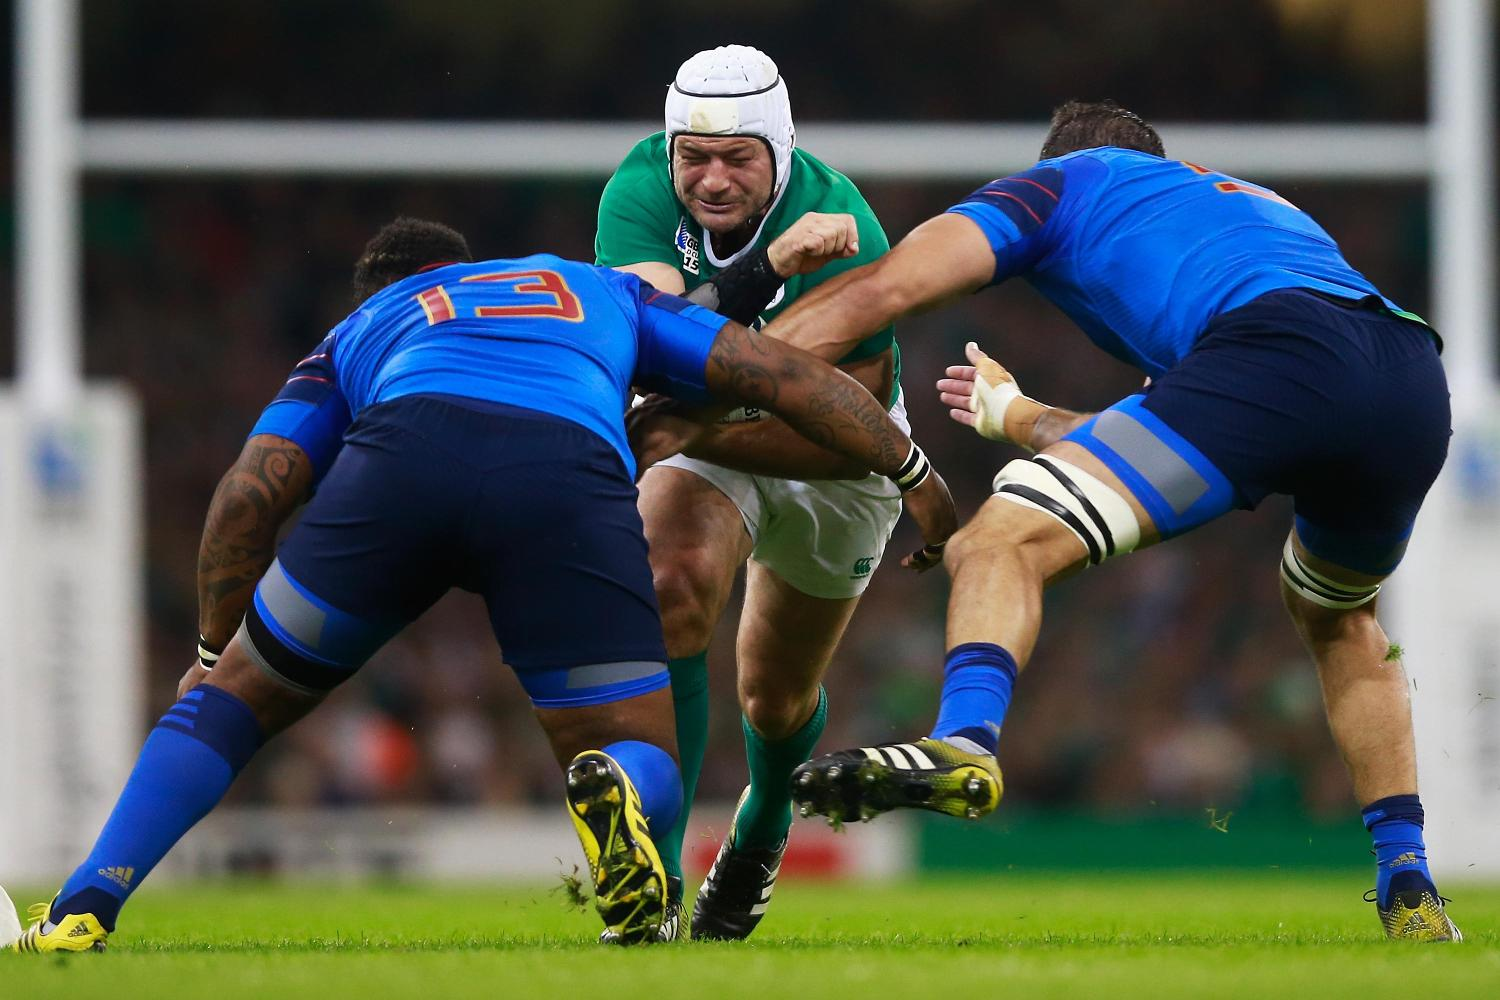 RWC 2015: Ireland v France - Rory Best